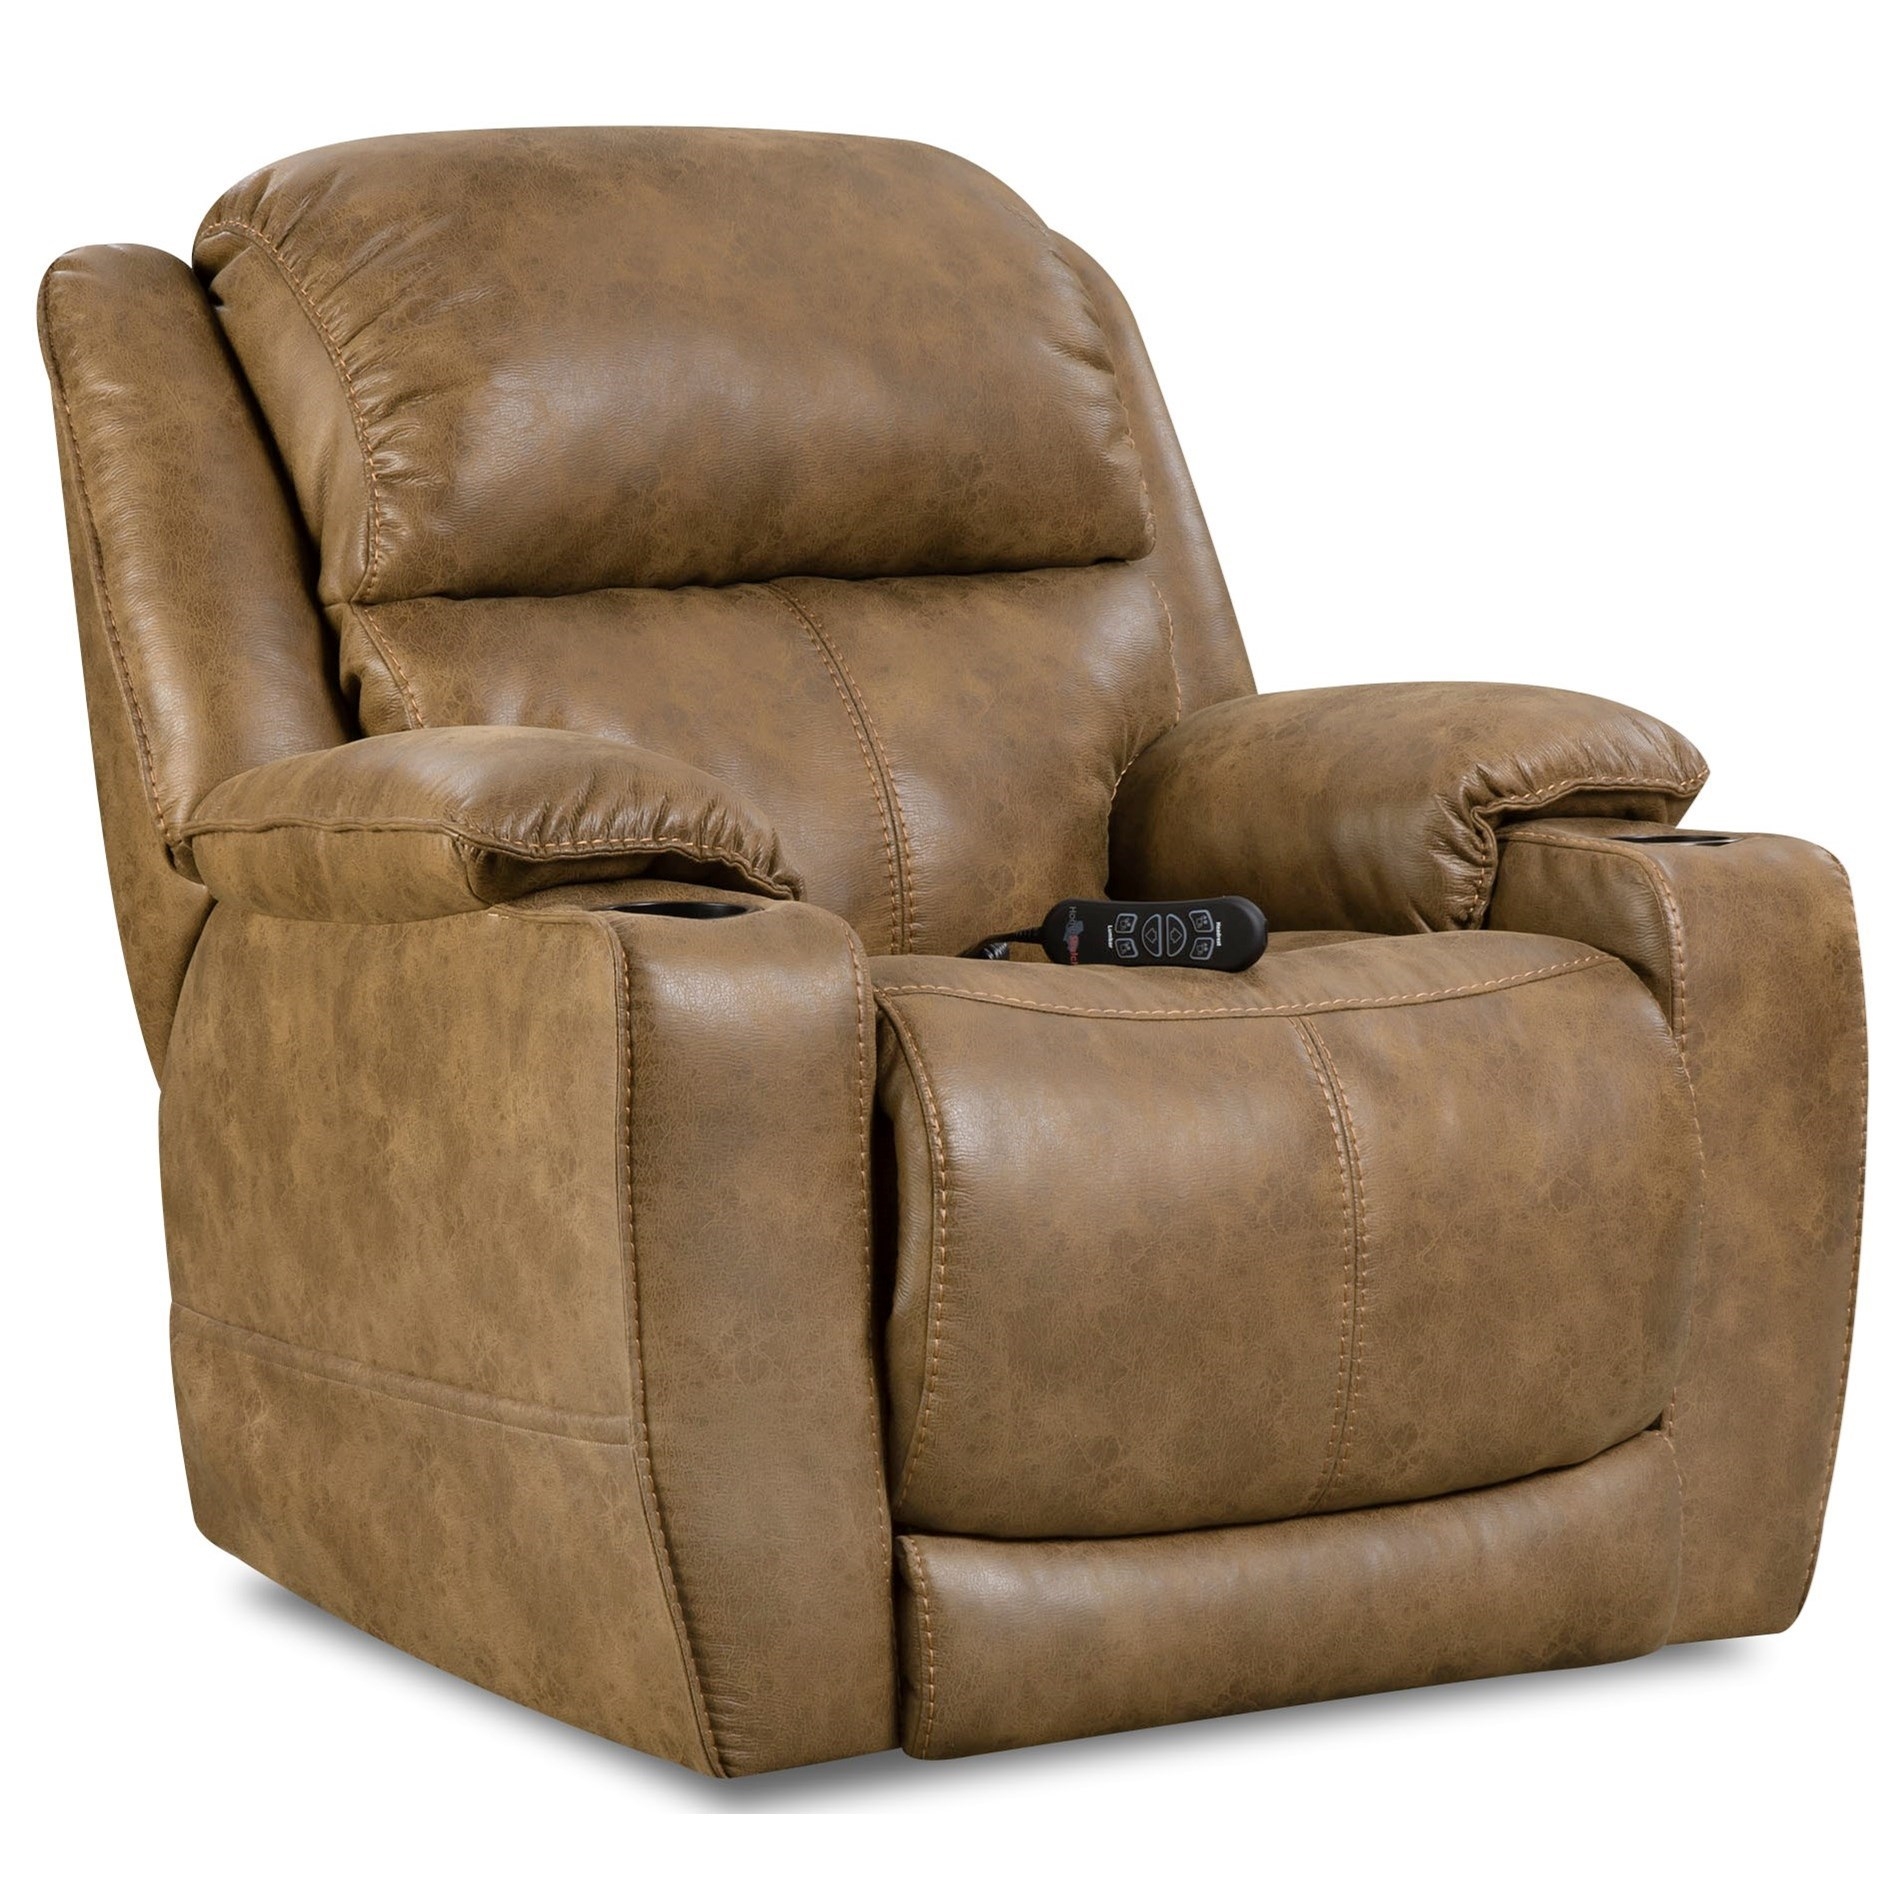 Starship Home Theater Recliner at Sadler's Home Furnishings